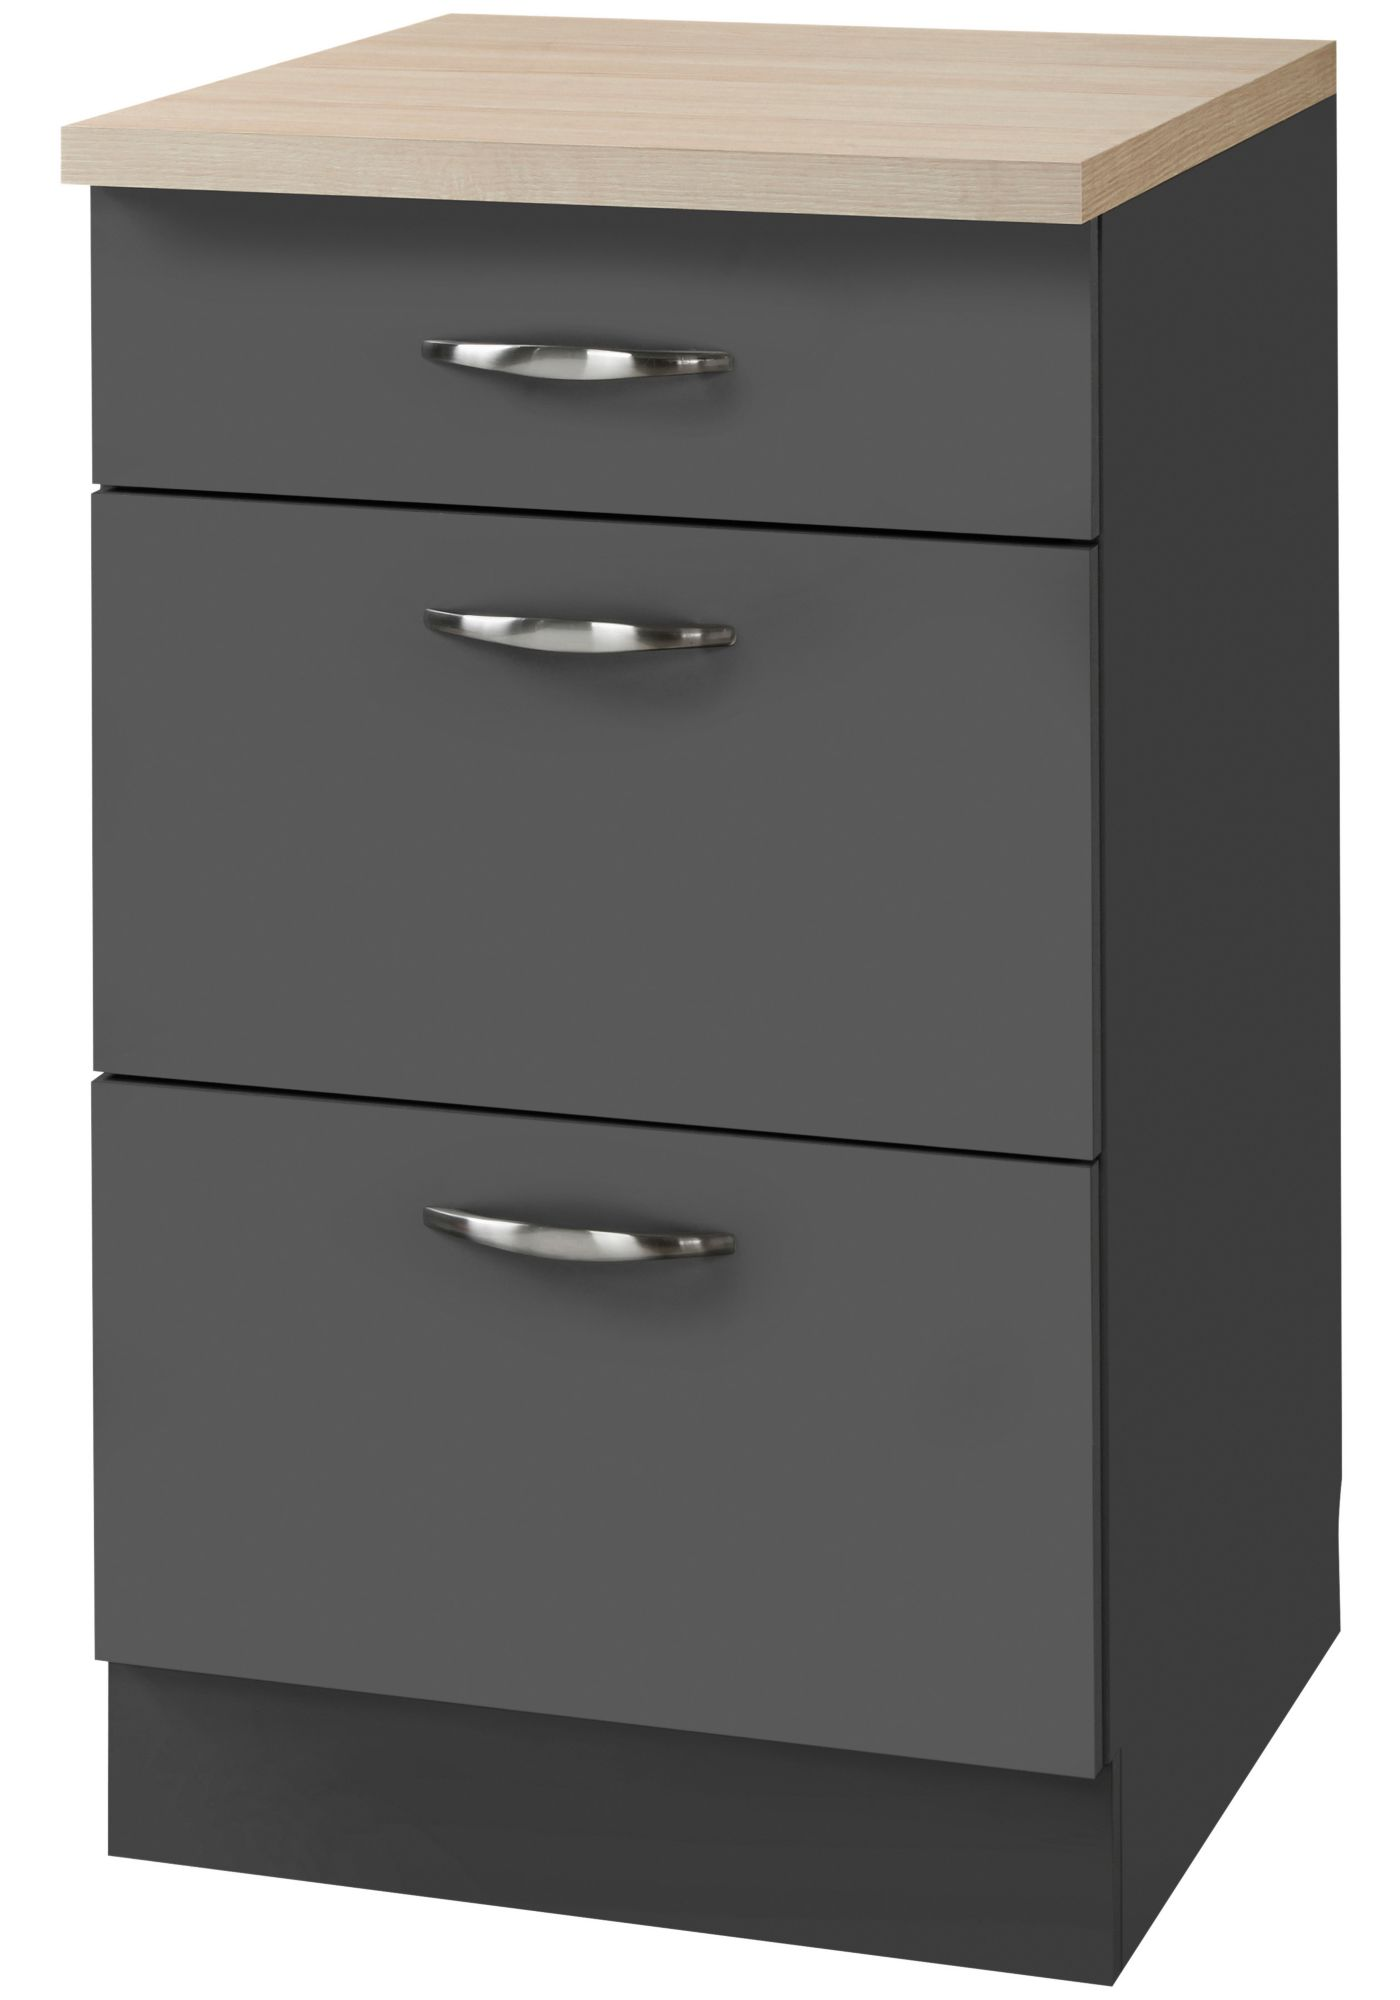 kuchenunterschrank dakota g nstig online kaufen beim schwab versand. Black Bedroom Furniture Sets. Home Design Ideas